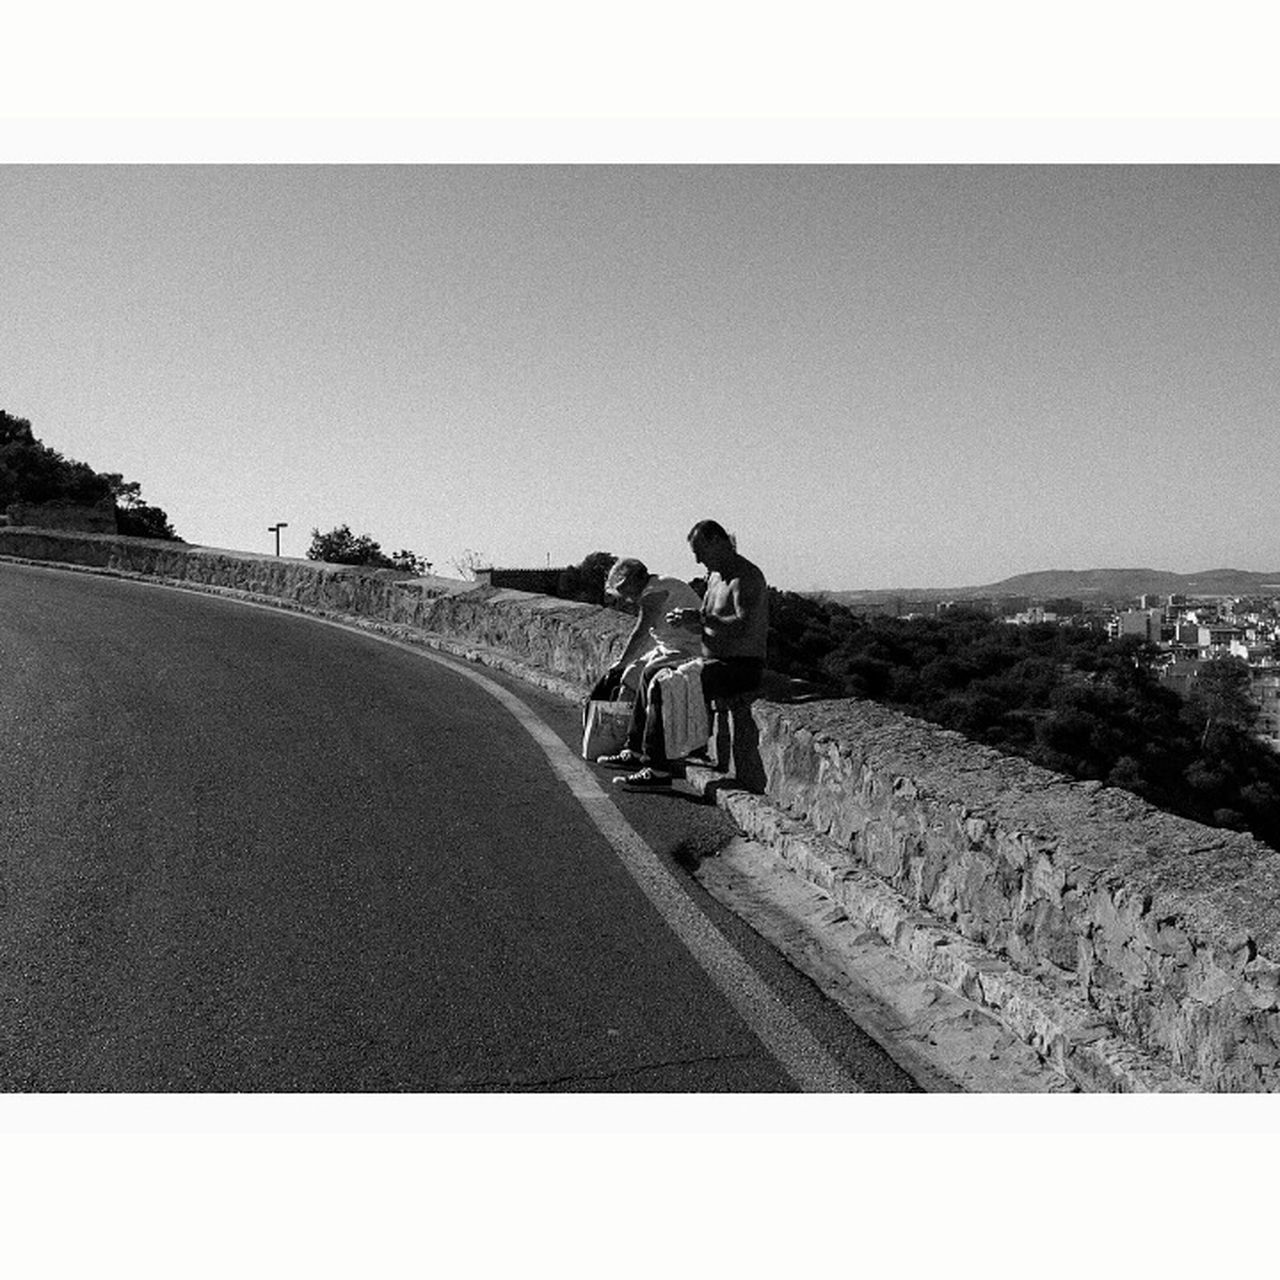 Alicante, Castillo. Alicante, Spain Castillo De Santa Bárbara Bicycle Riding Cycling One Person Mode Of Transport Transportation Land Vehicle Outdoors Full Length Motorcycle Rear View Real People One Man Only Day Men Only Men Road Sky People Adult